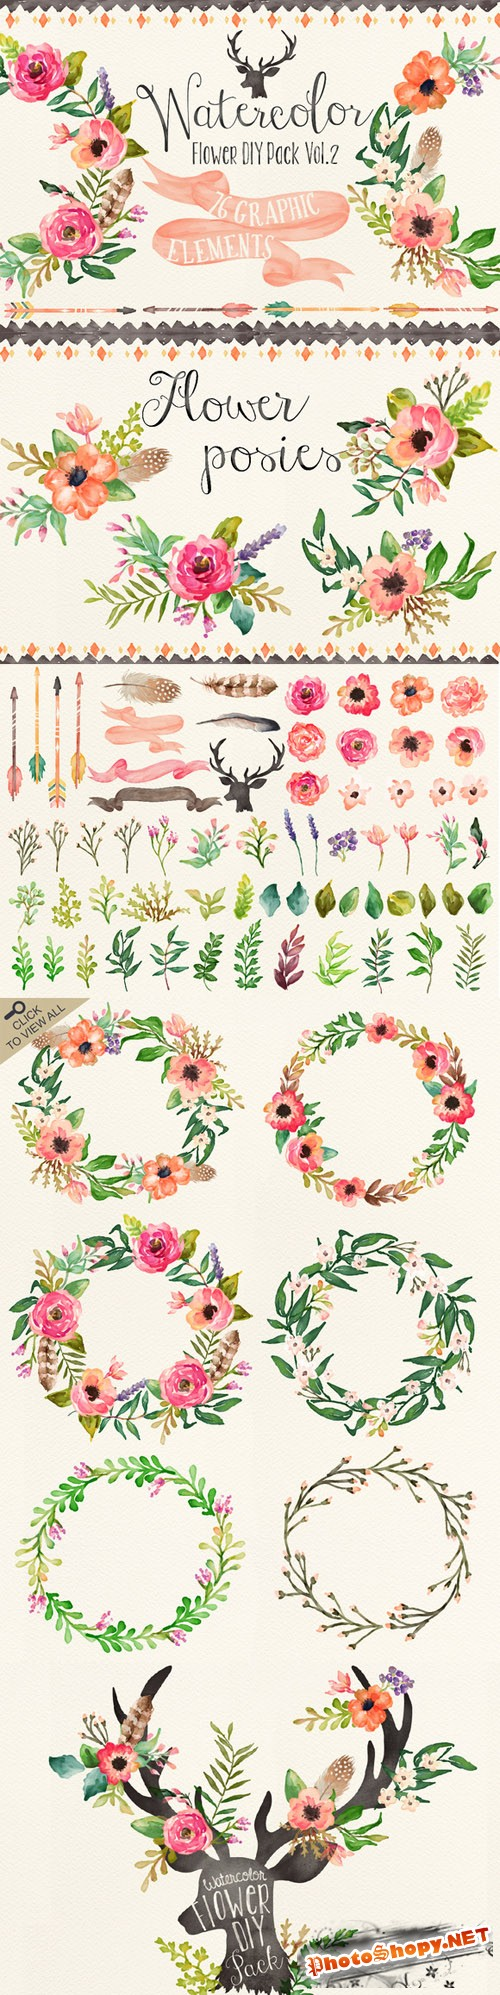 Creativemarket 90995 - Watercolor flower DIY pack Vol.2